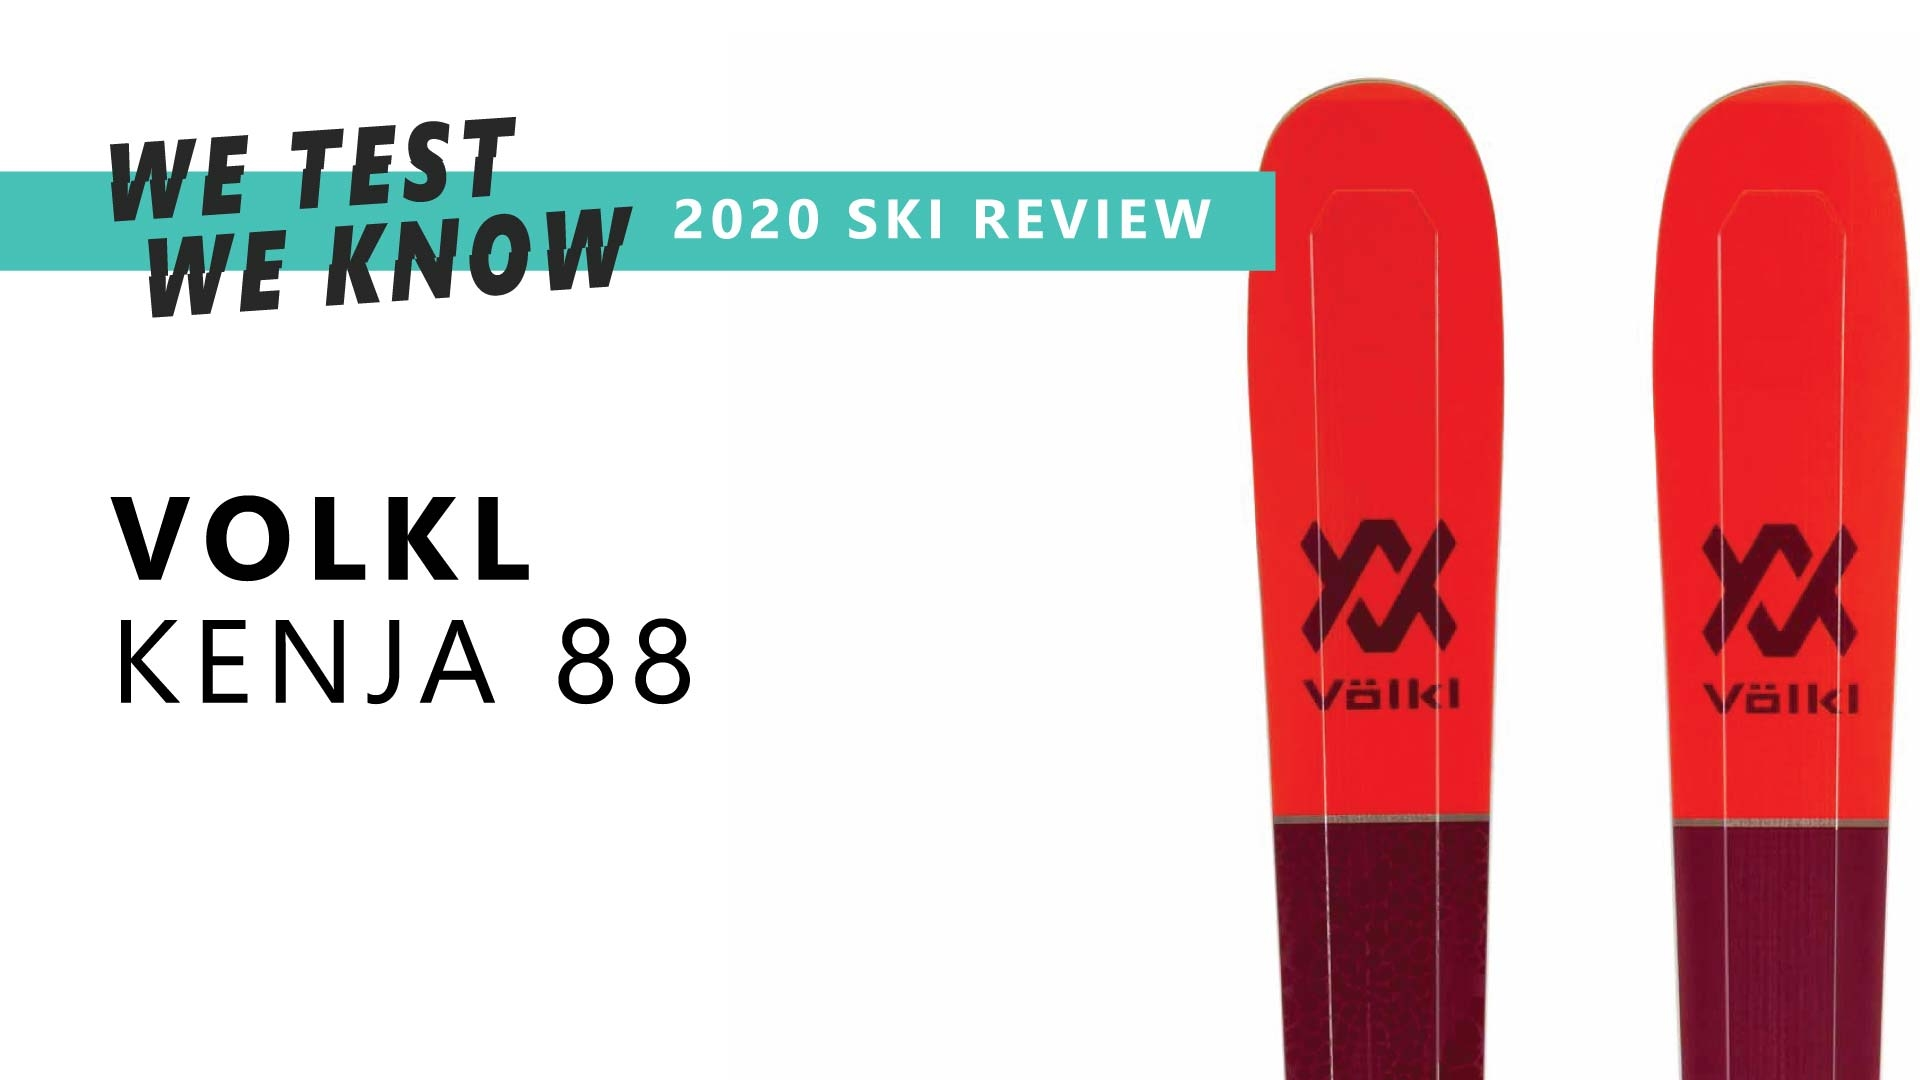 Volkl Kenja 88 - 2020 Ski Review